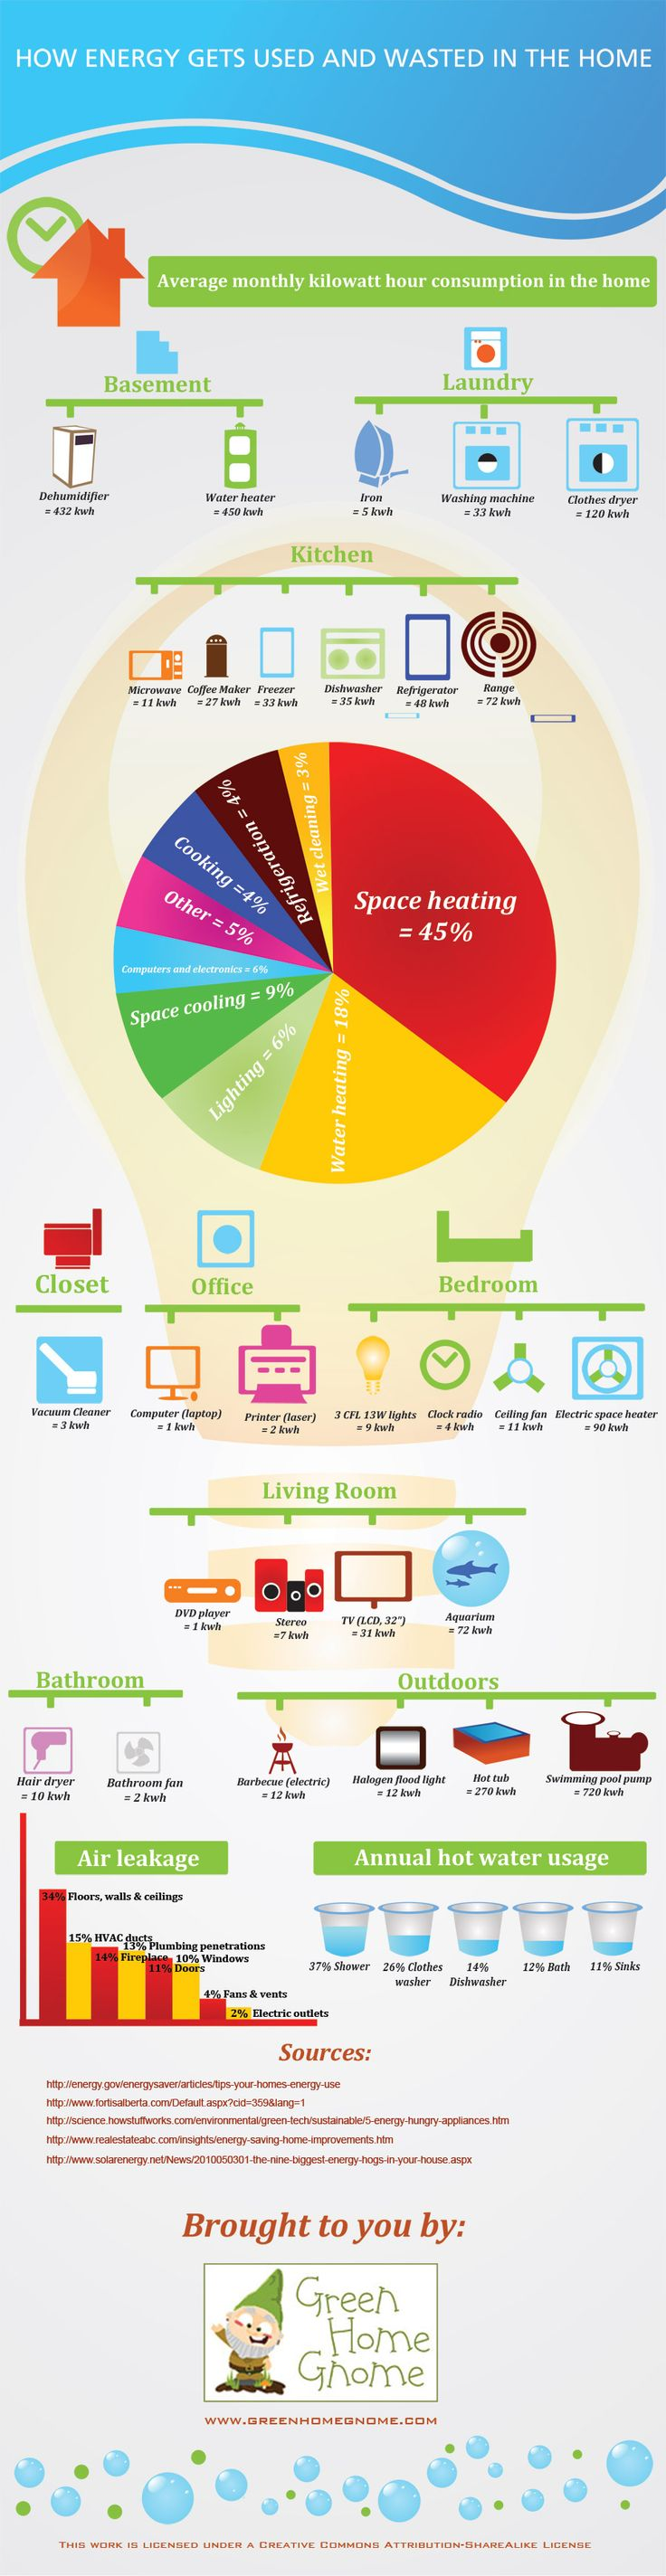 This infographic points out where energy gets used and wasted in the home so that you can learn how to easily save energy.